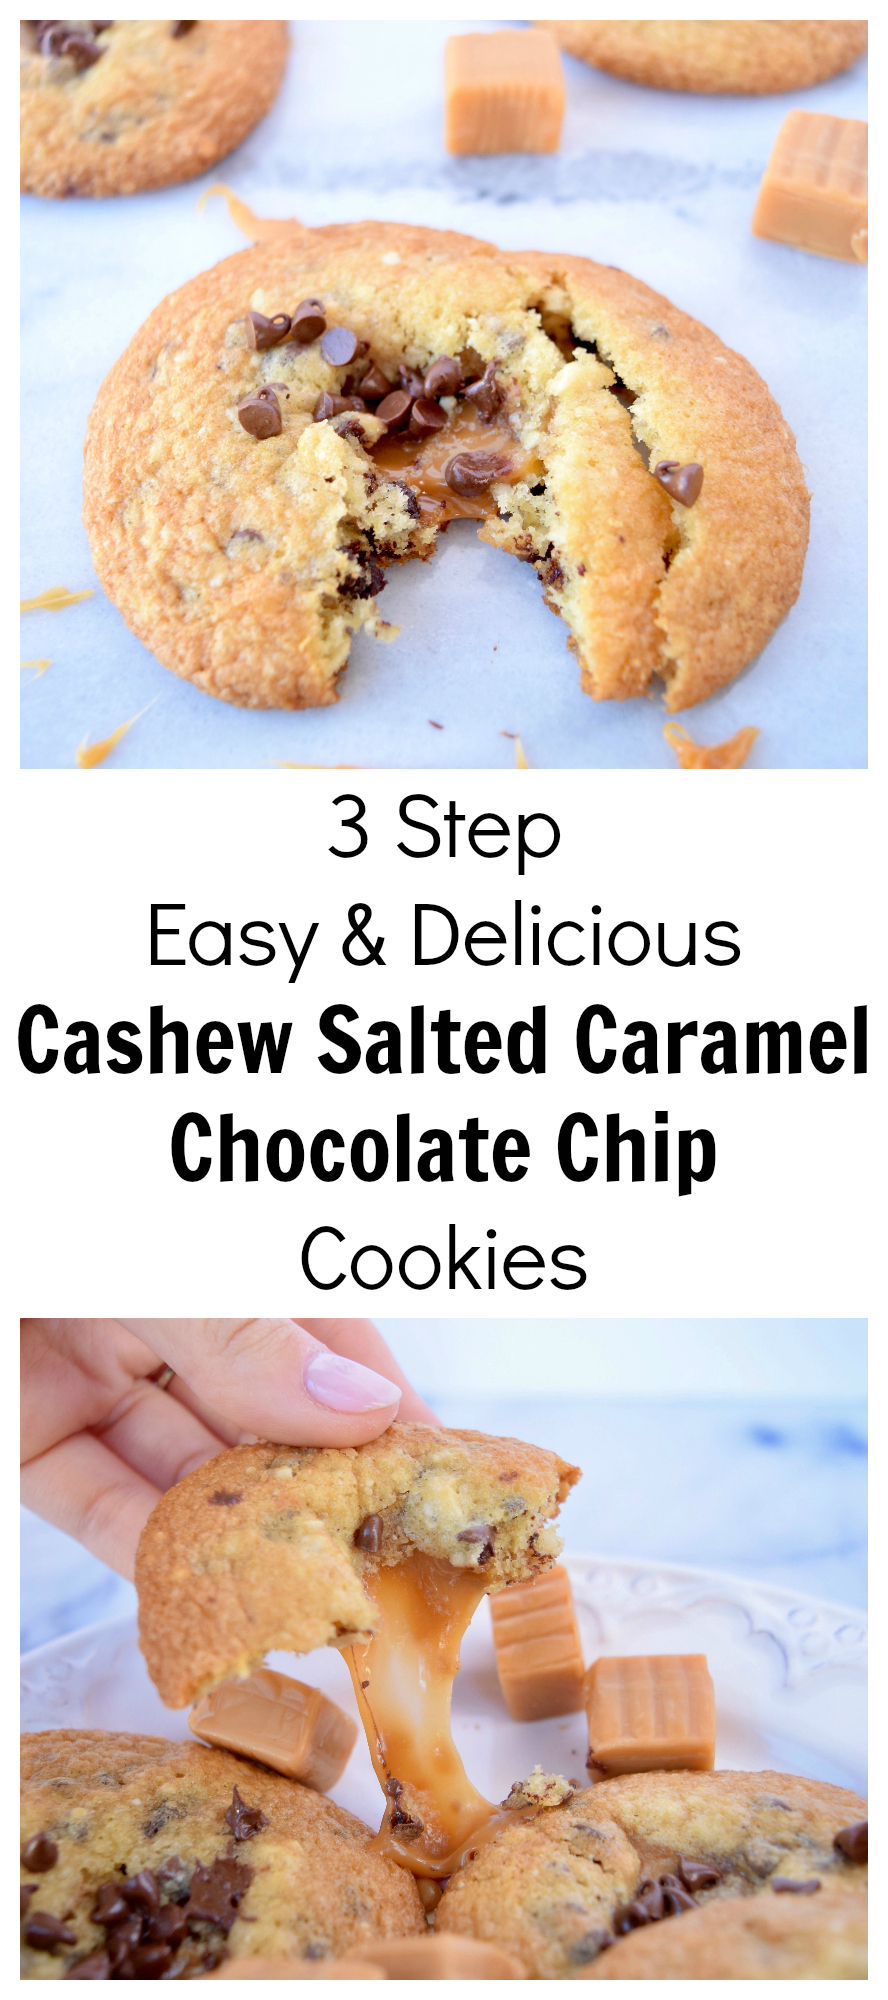 3 Step Easy & Delicious Cashew Salted Caramel Chocolate Chip Cookies